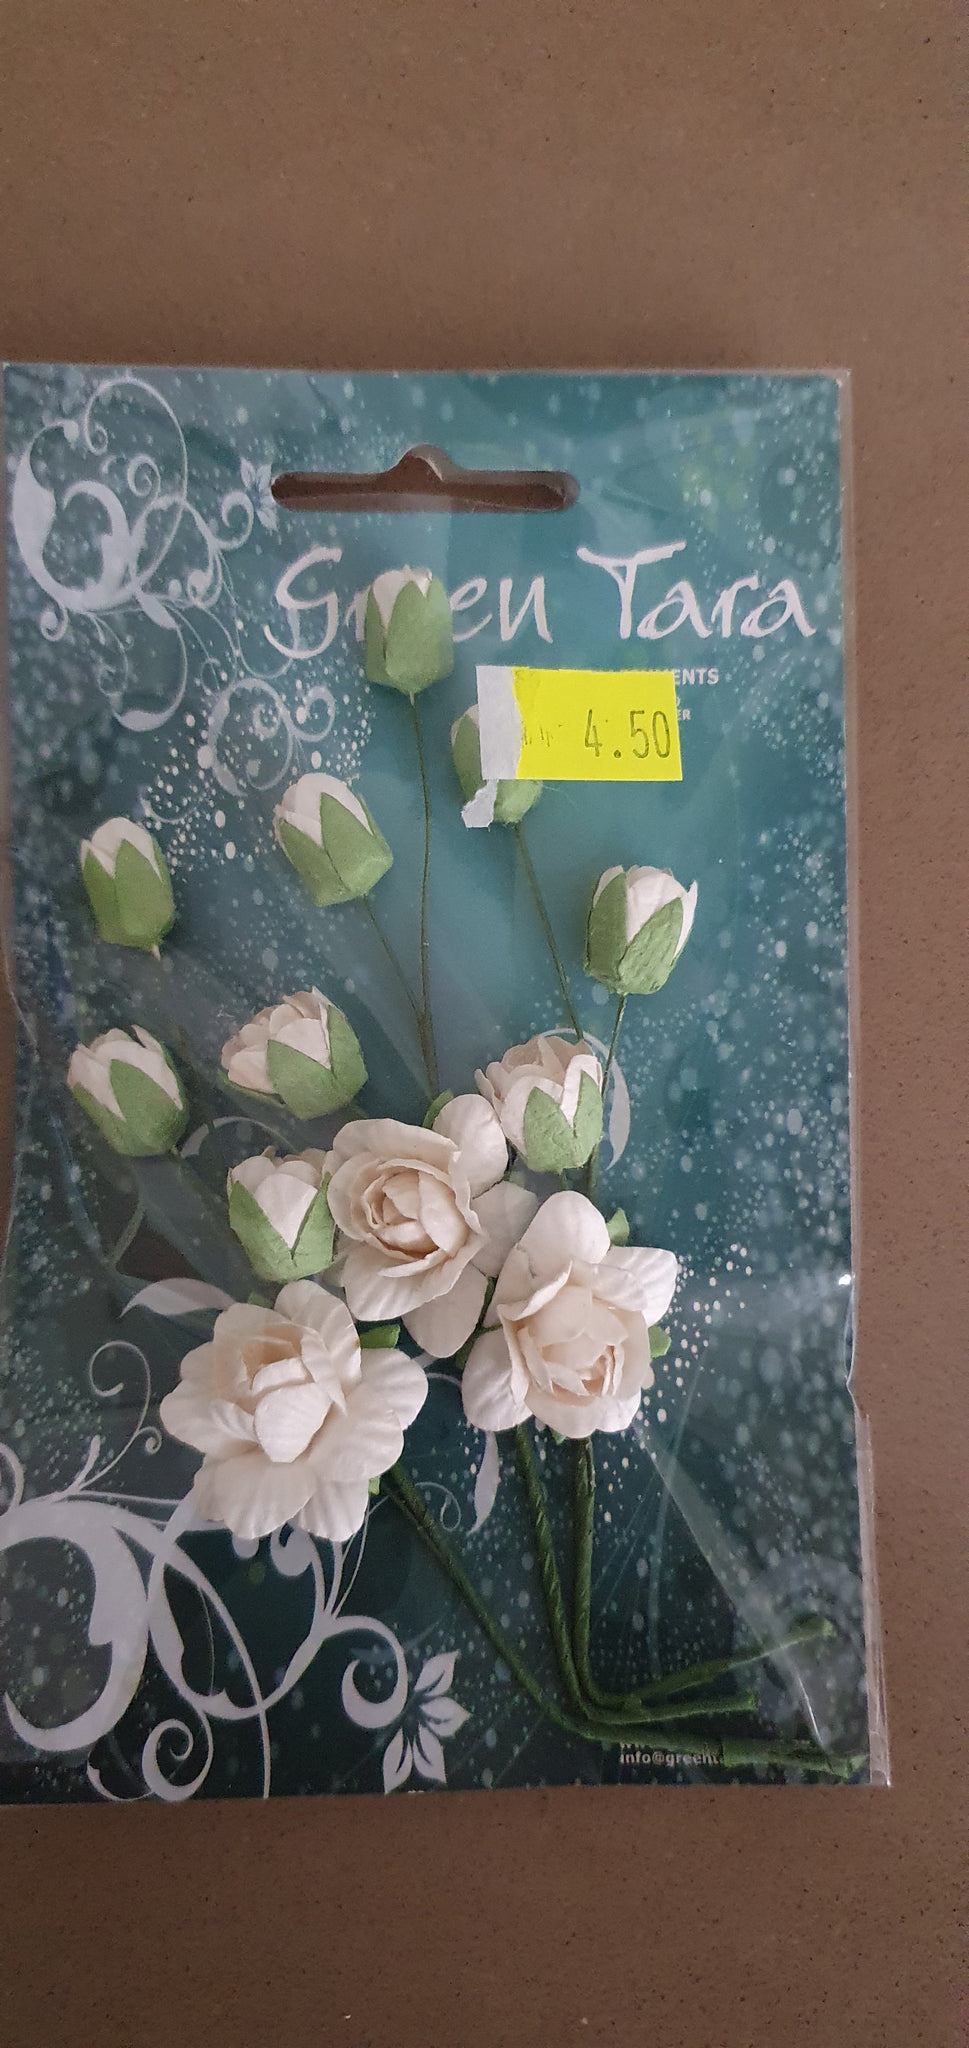 GREEN TARA Flowers - Rose and Rosebud Spays